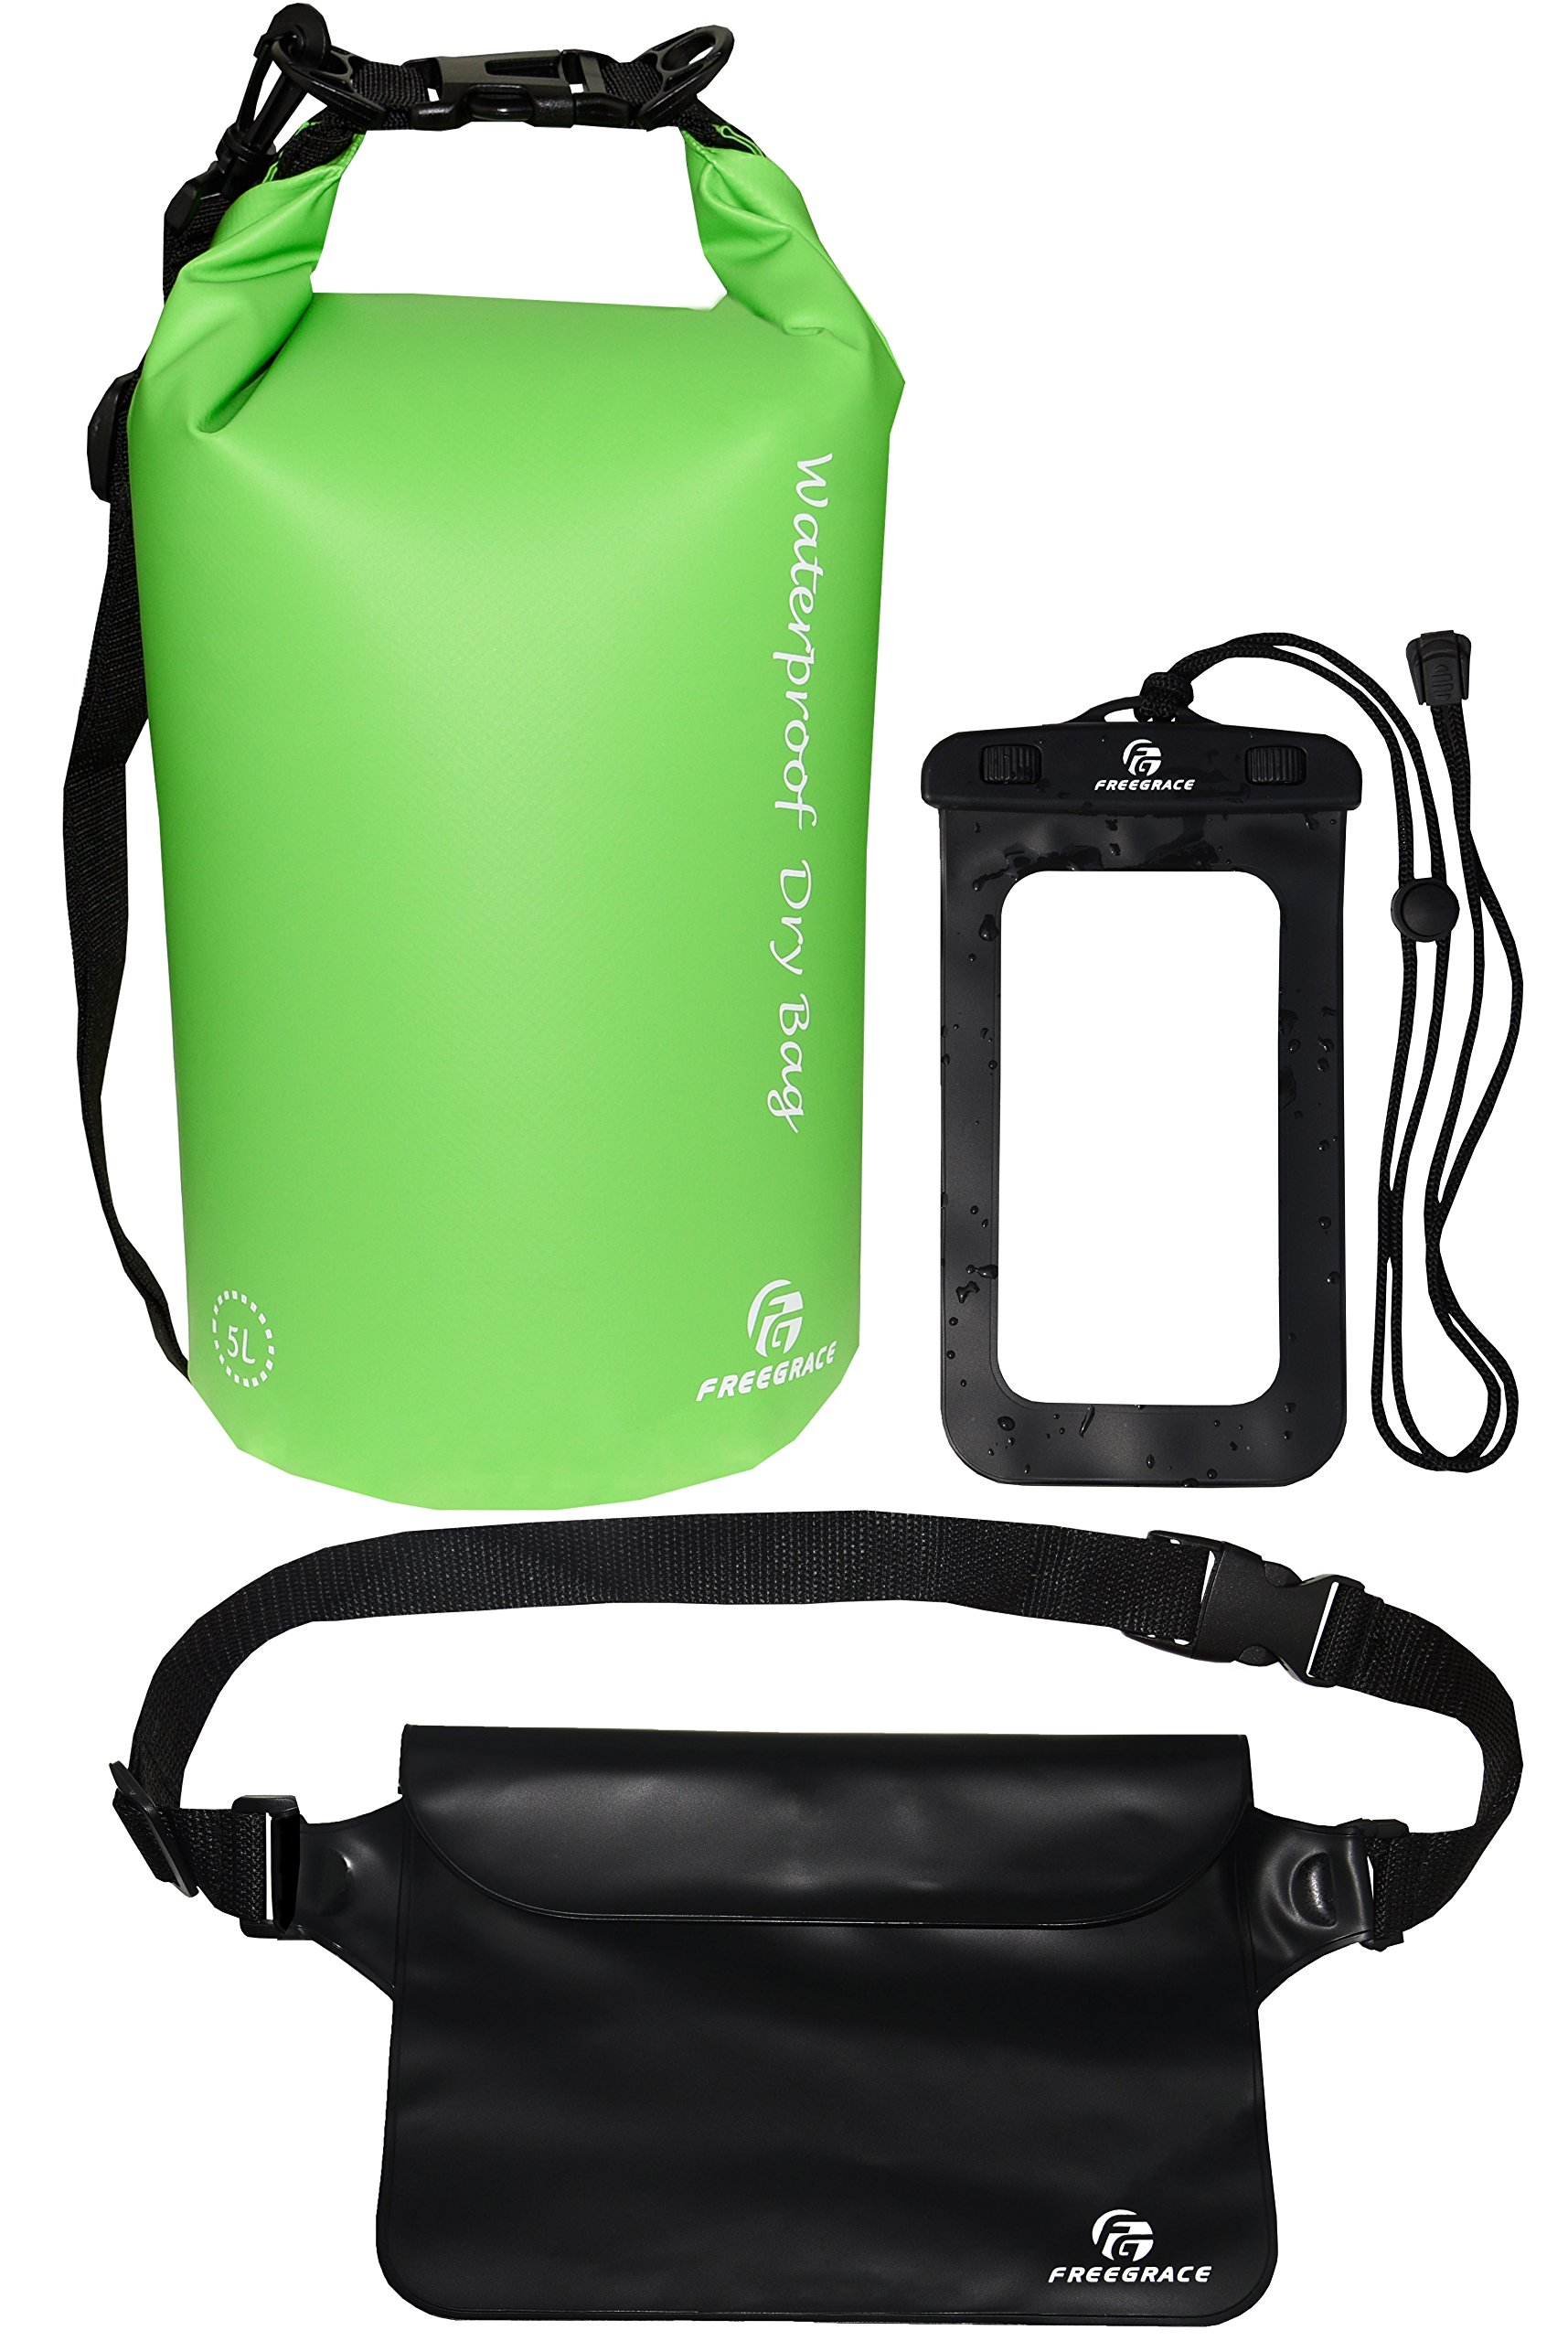 Freegrace Waterproof Dry Bags Set of 3 Dry Bag with 2 Zip Lock Seals & Detachable Shoulder Strap, Waist Pouch & Phone Case - Can Be Submerged Into Water - for Swimming (Green, 5L)